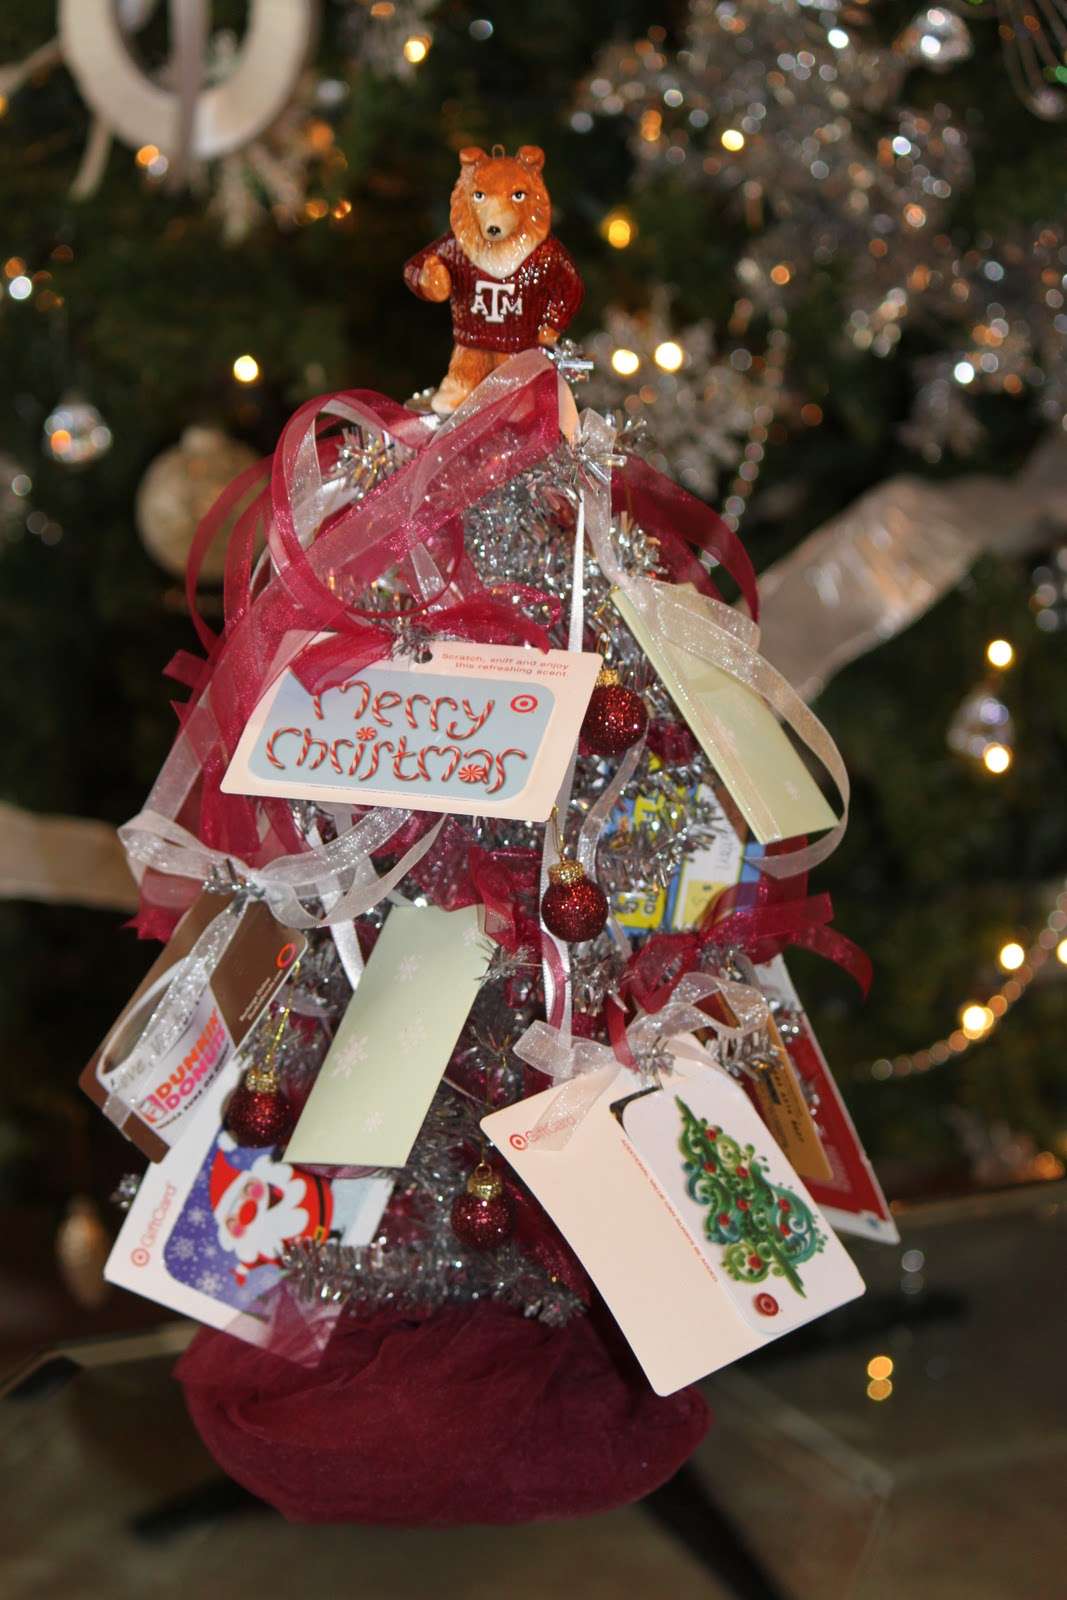 The blackberry vine gift card christmas tree